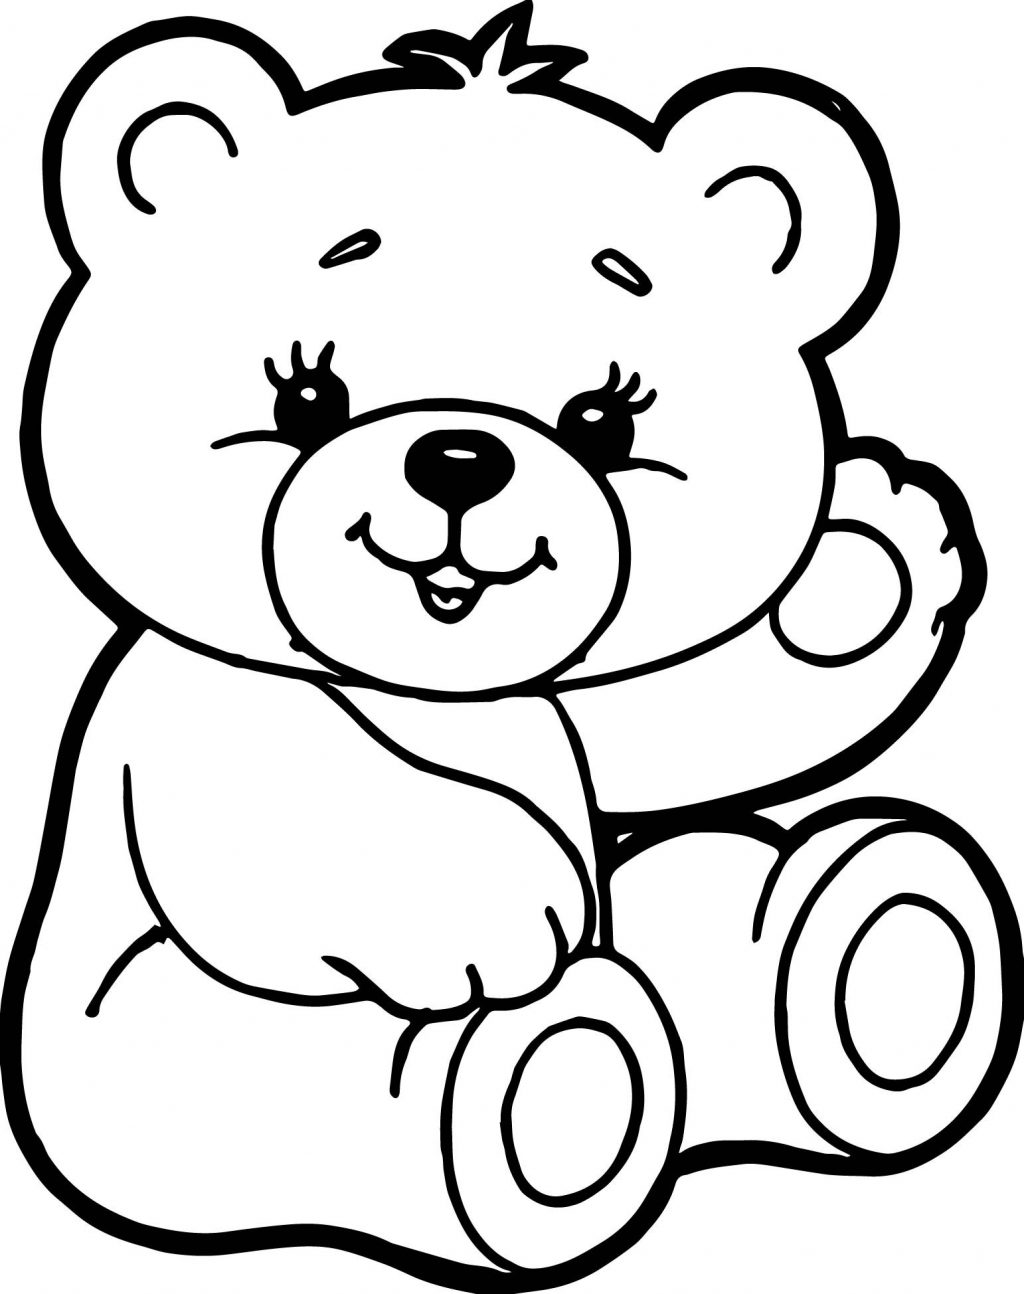 colouring teddy bear christmas teddy bear coloring pages printable for kids bear teddy colouring